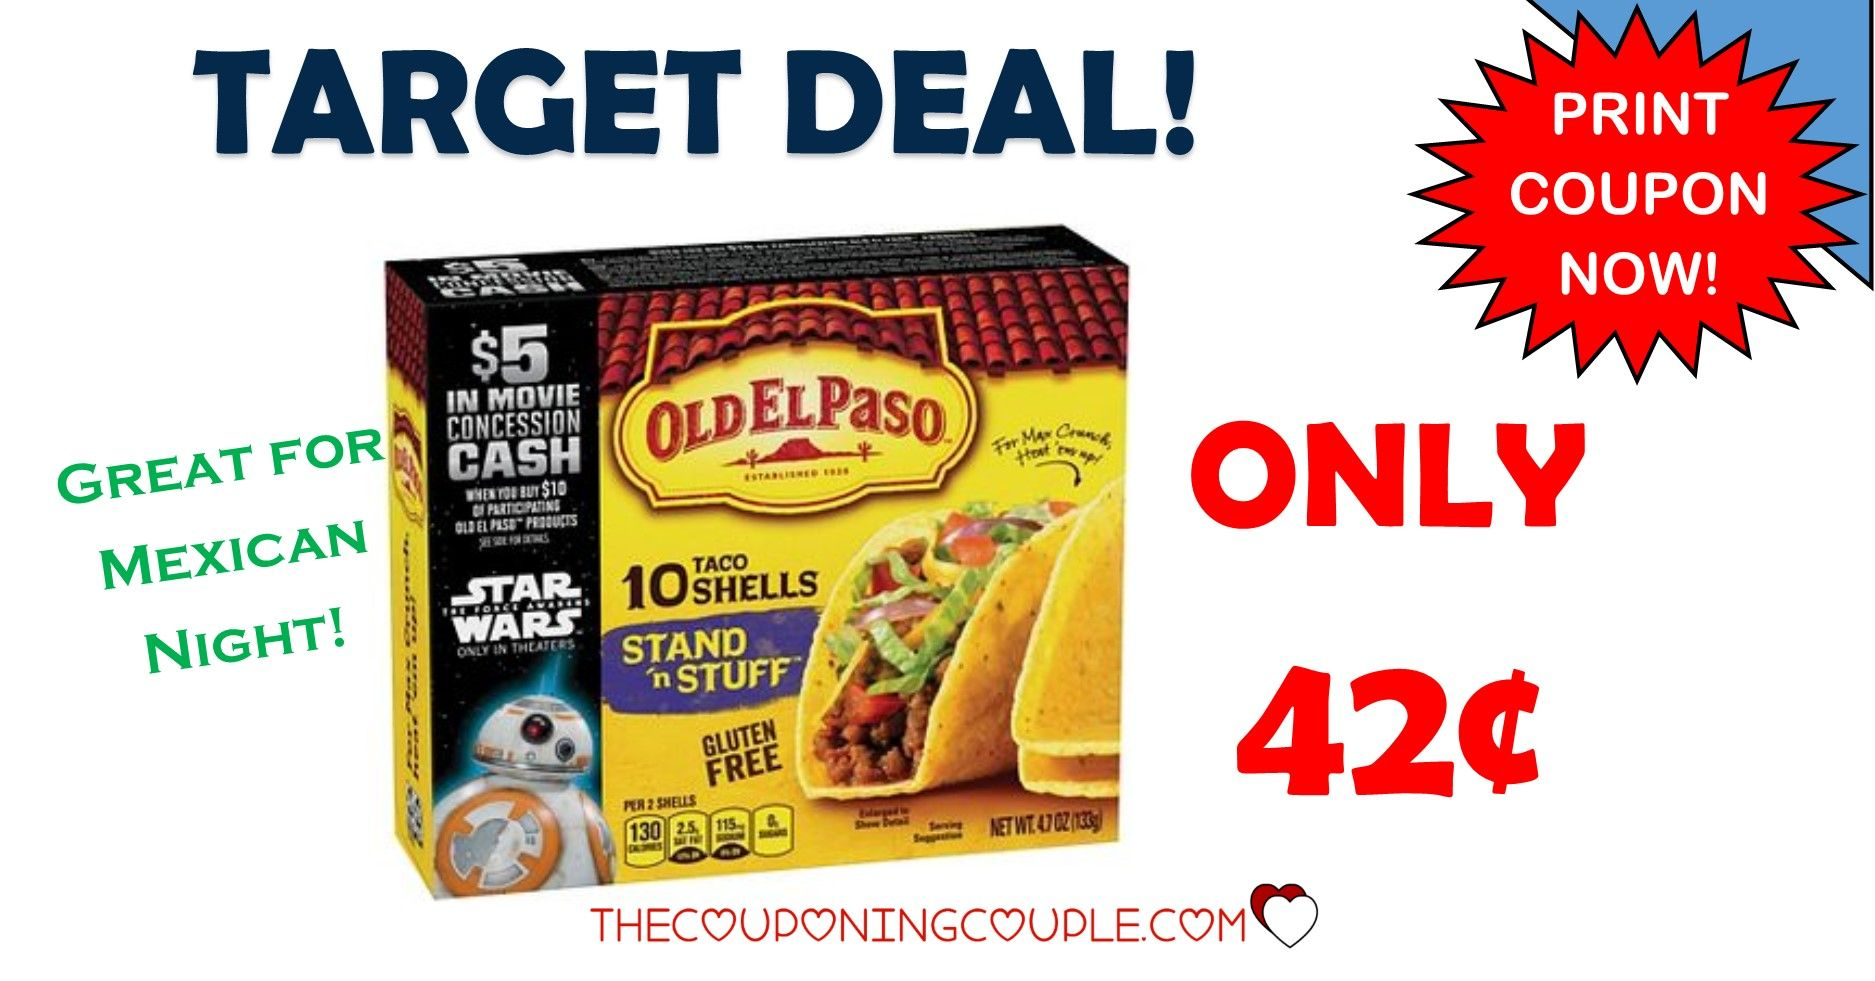 Old El Paso Coupons Hot Target Deal Taco Shells 0 42 Box Print Coupons Taco Stuffed Shells Target Deals